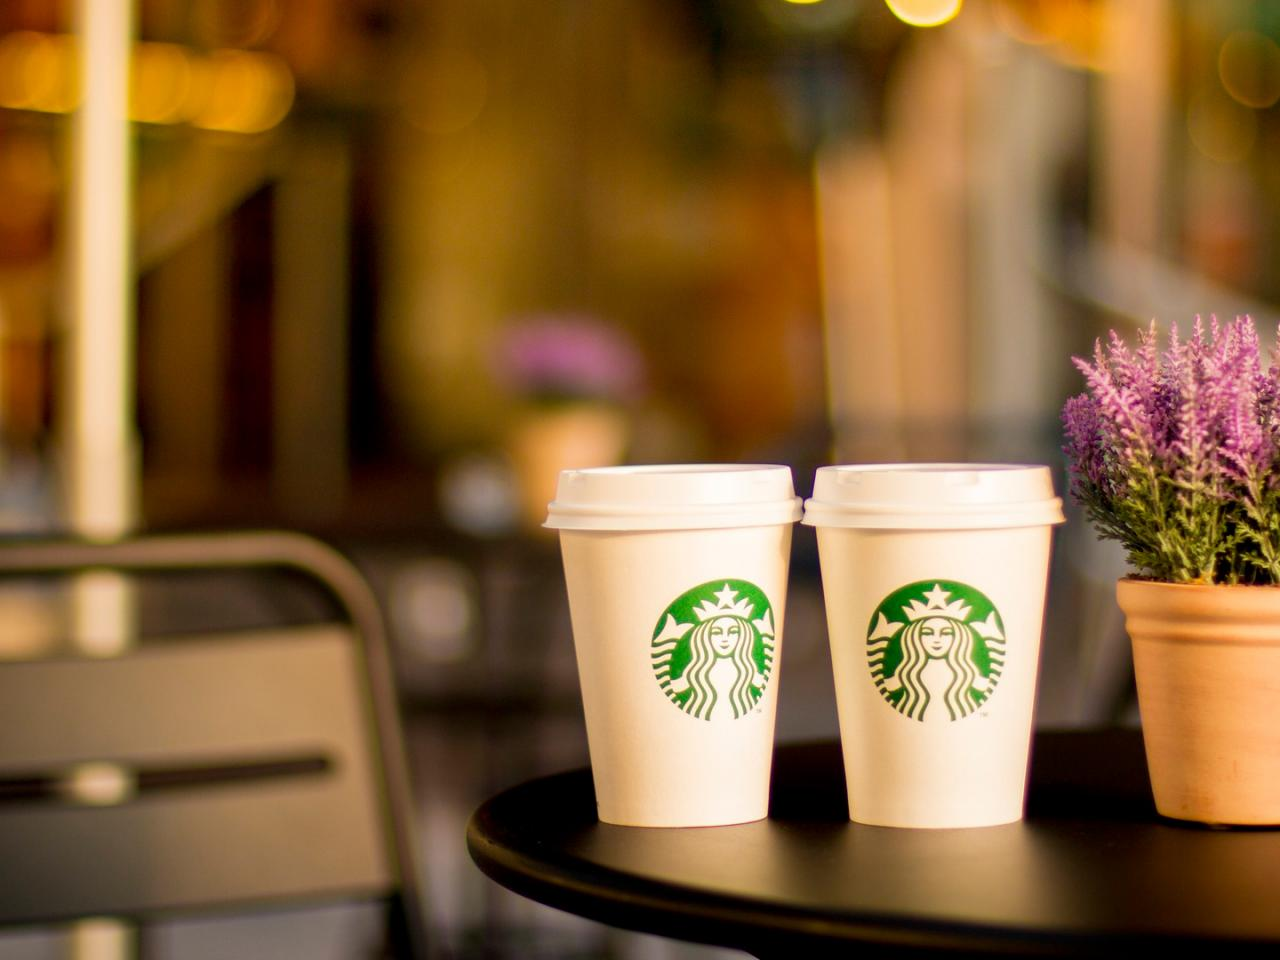 Starbucks Pictures In Hd With Two Cups On Table Hd